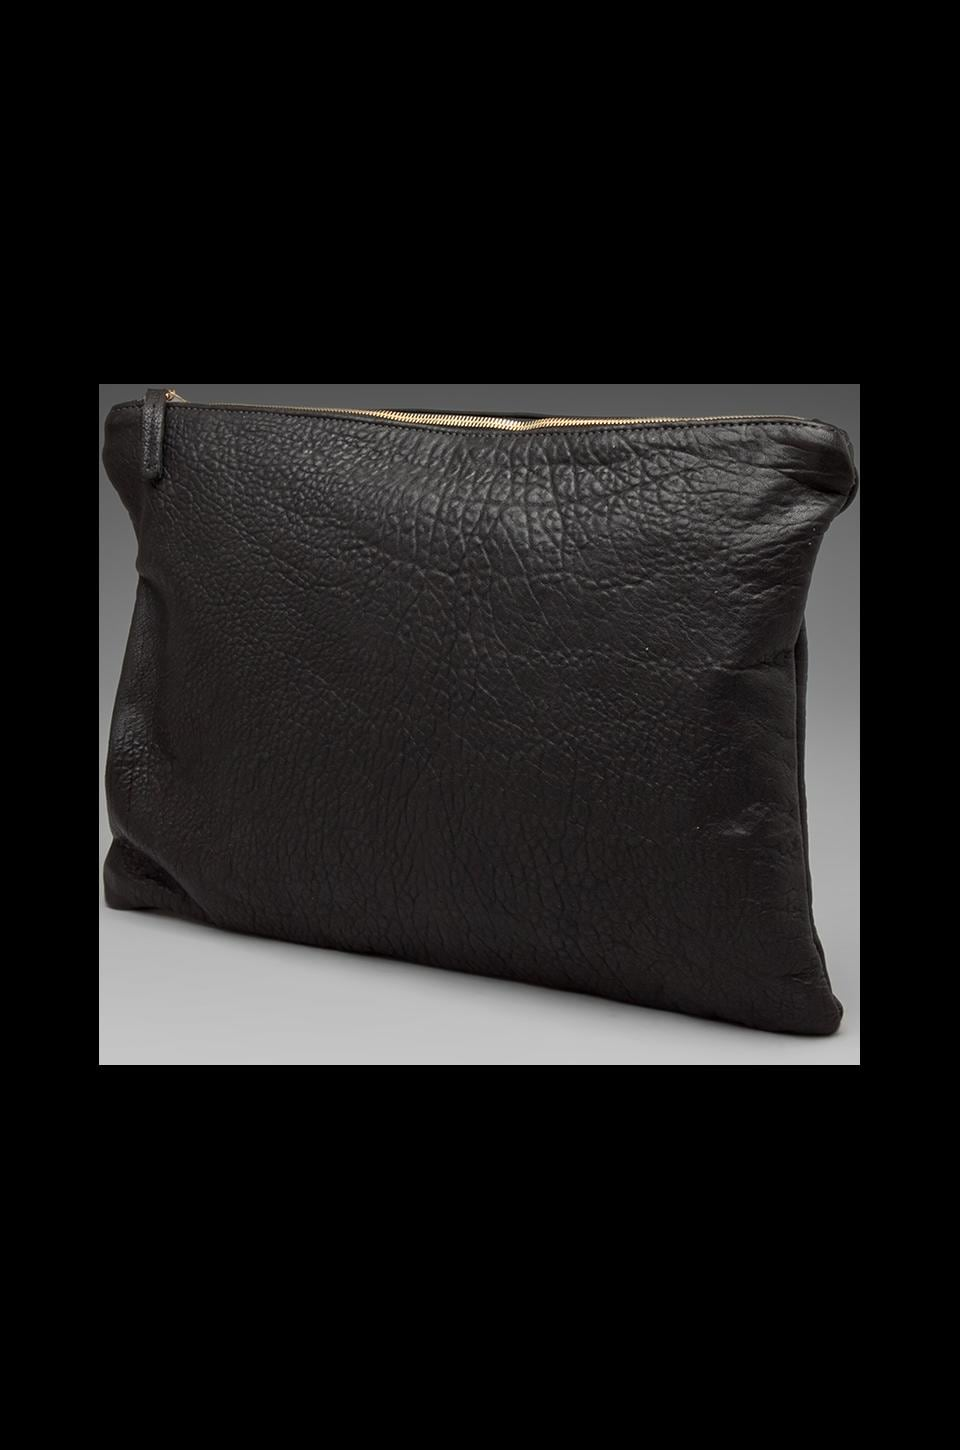 Clare V. Oversized Laptop Clutch in Black Pebble